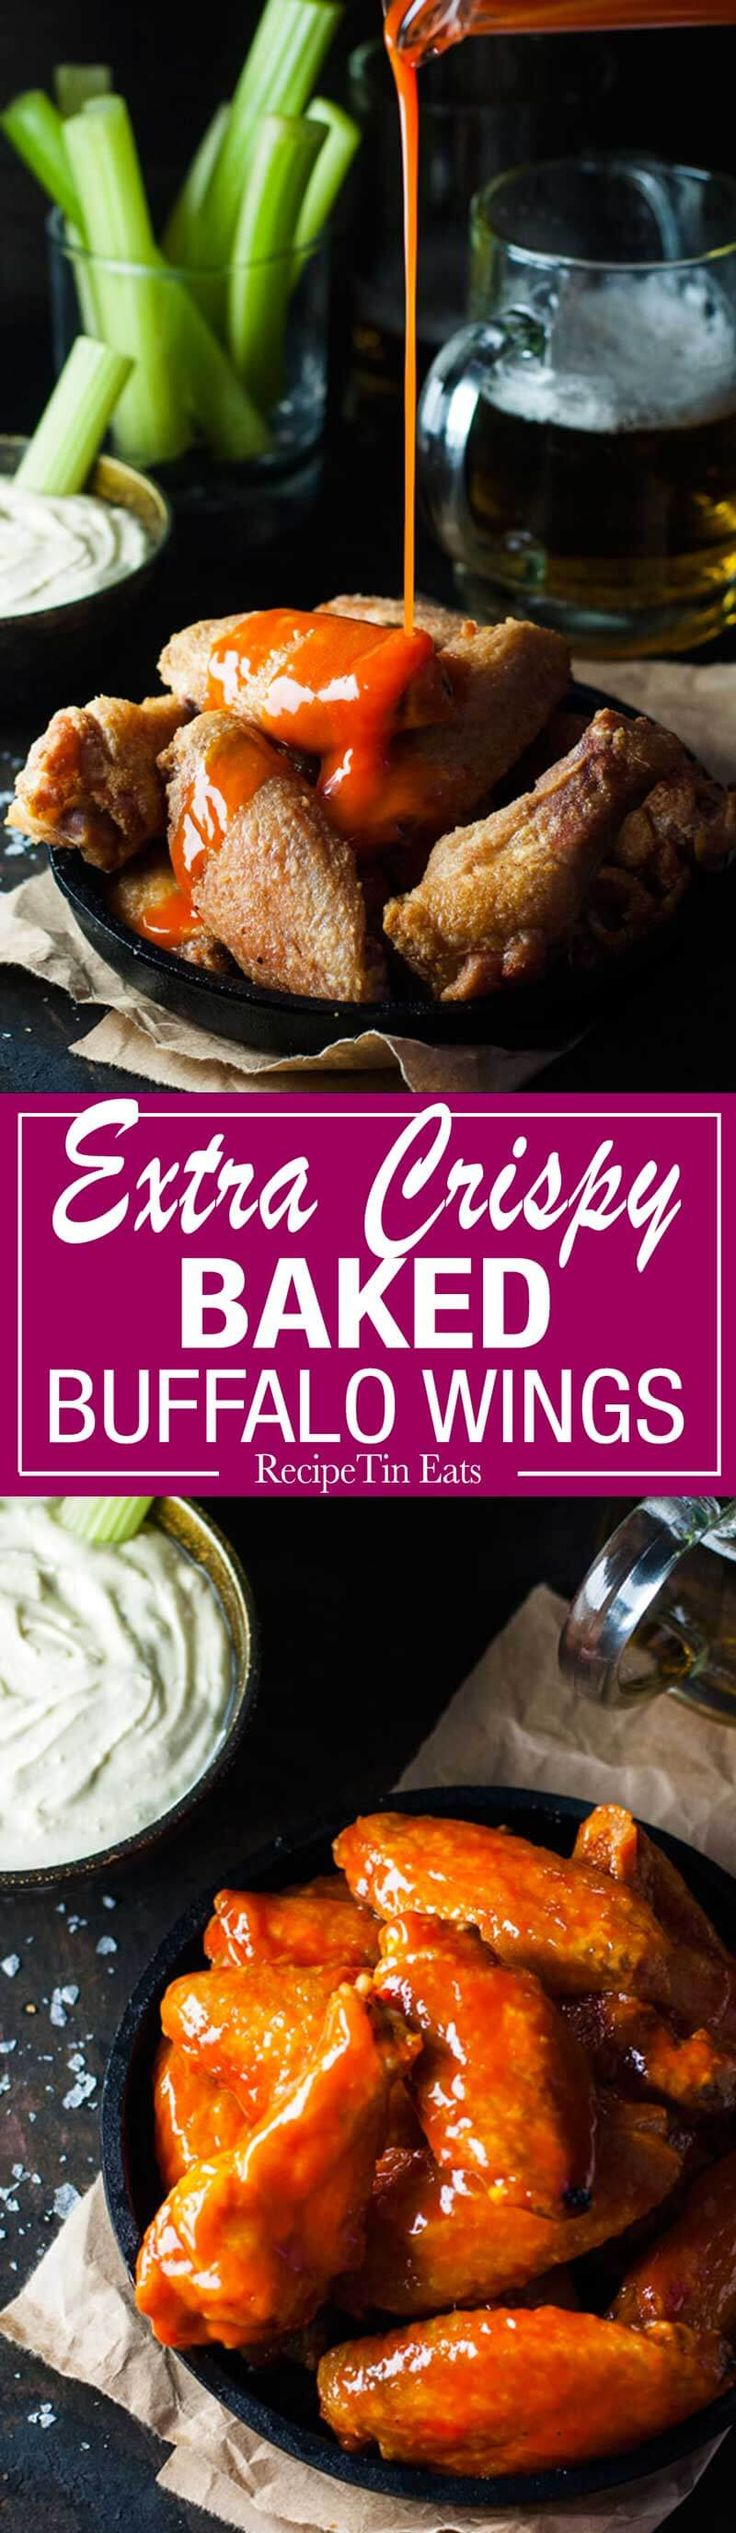 Oven Baked Buffalo Wings - no false promises here, these wings really ...